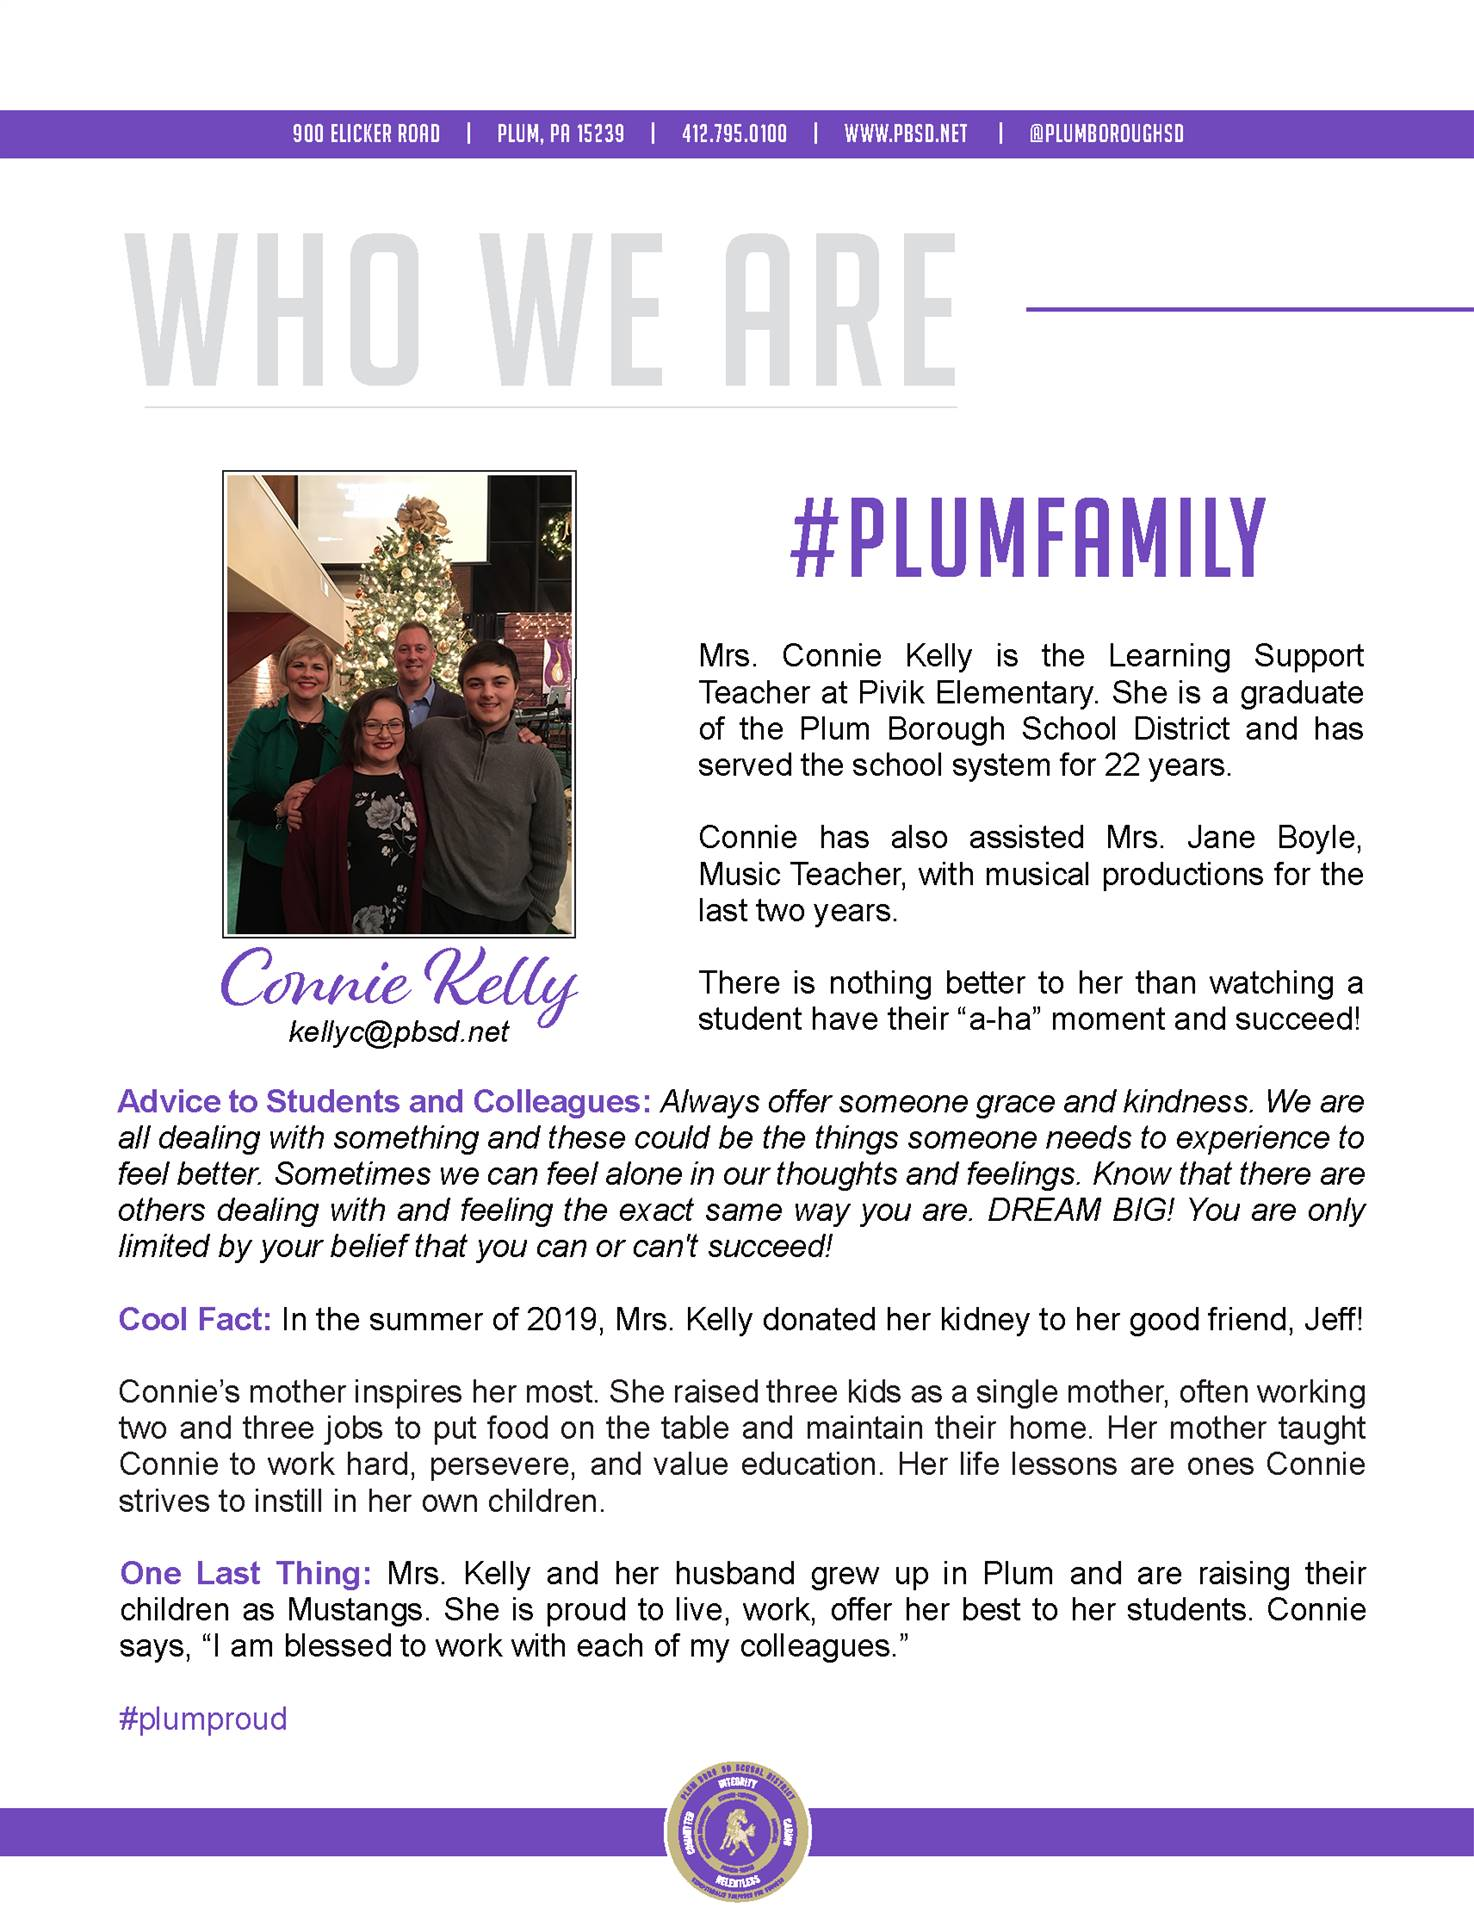 Who We Are Wednesday features Connie Kelly.